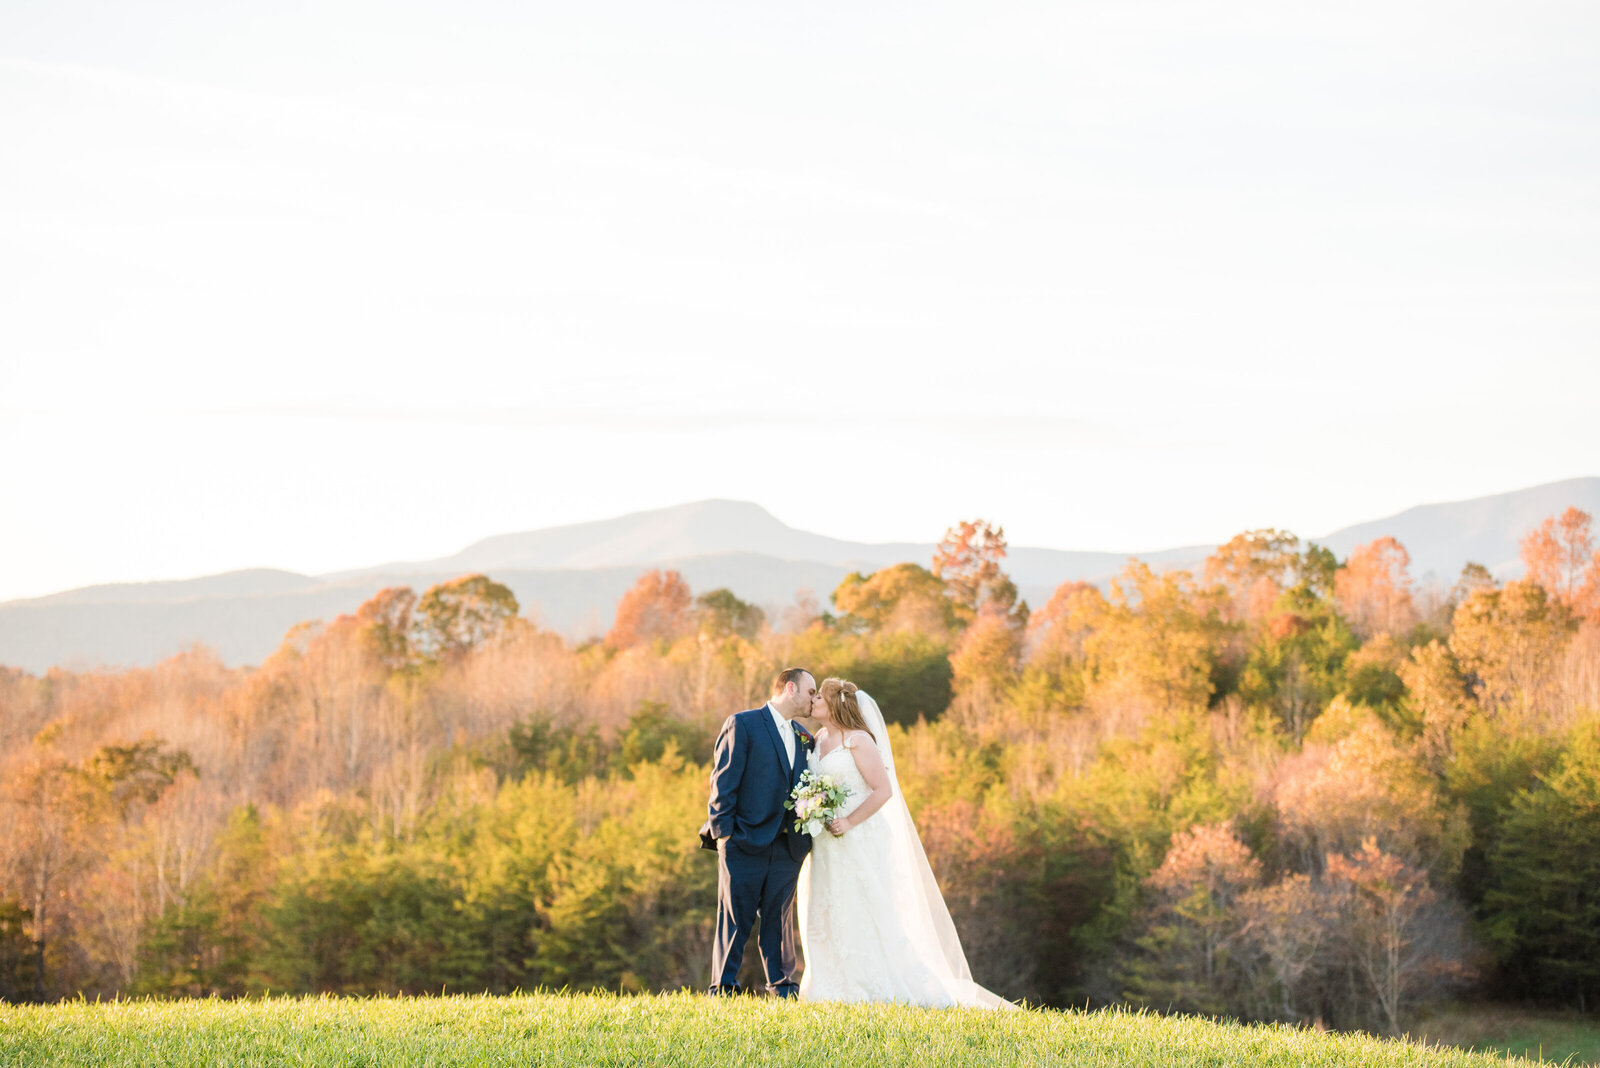 Marena Claire Photography Second Shooter Virginia Wedding Photographer Glass Hill Venue Whole Heart Studios _0025